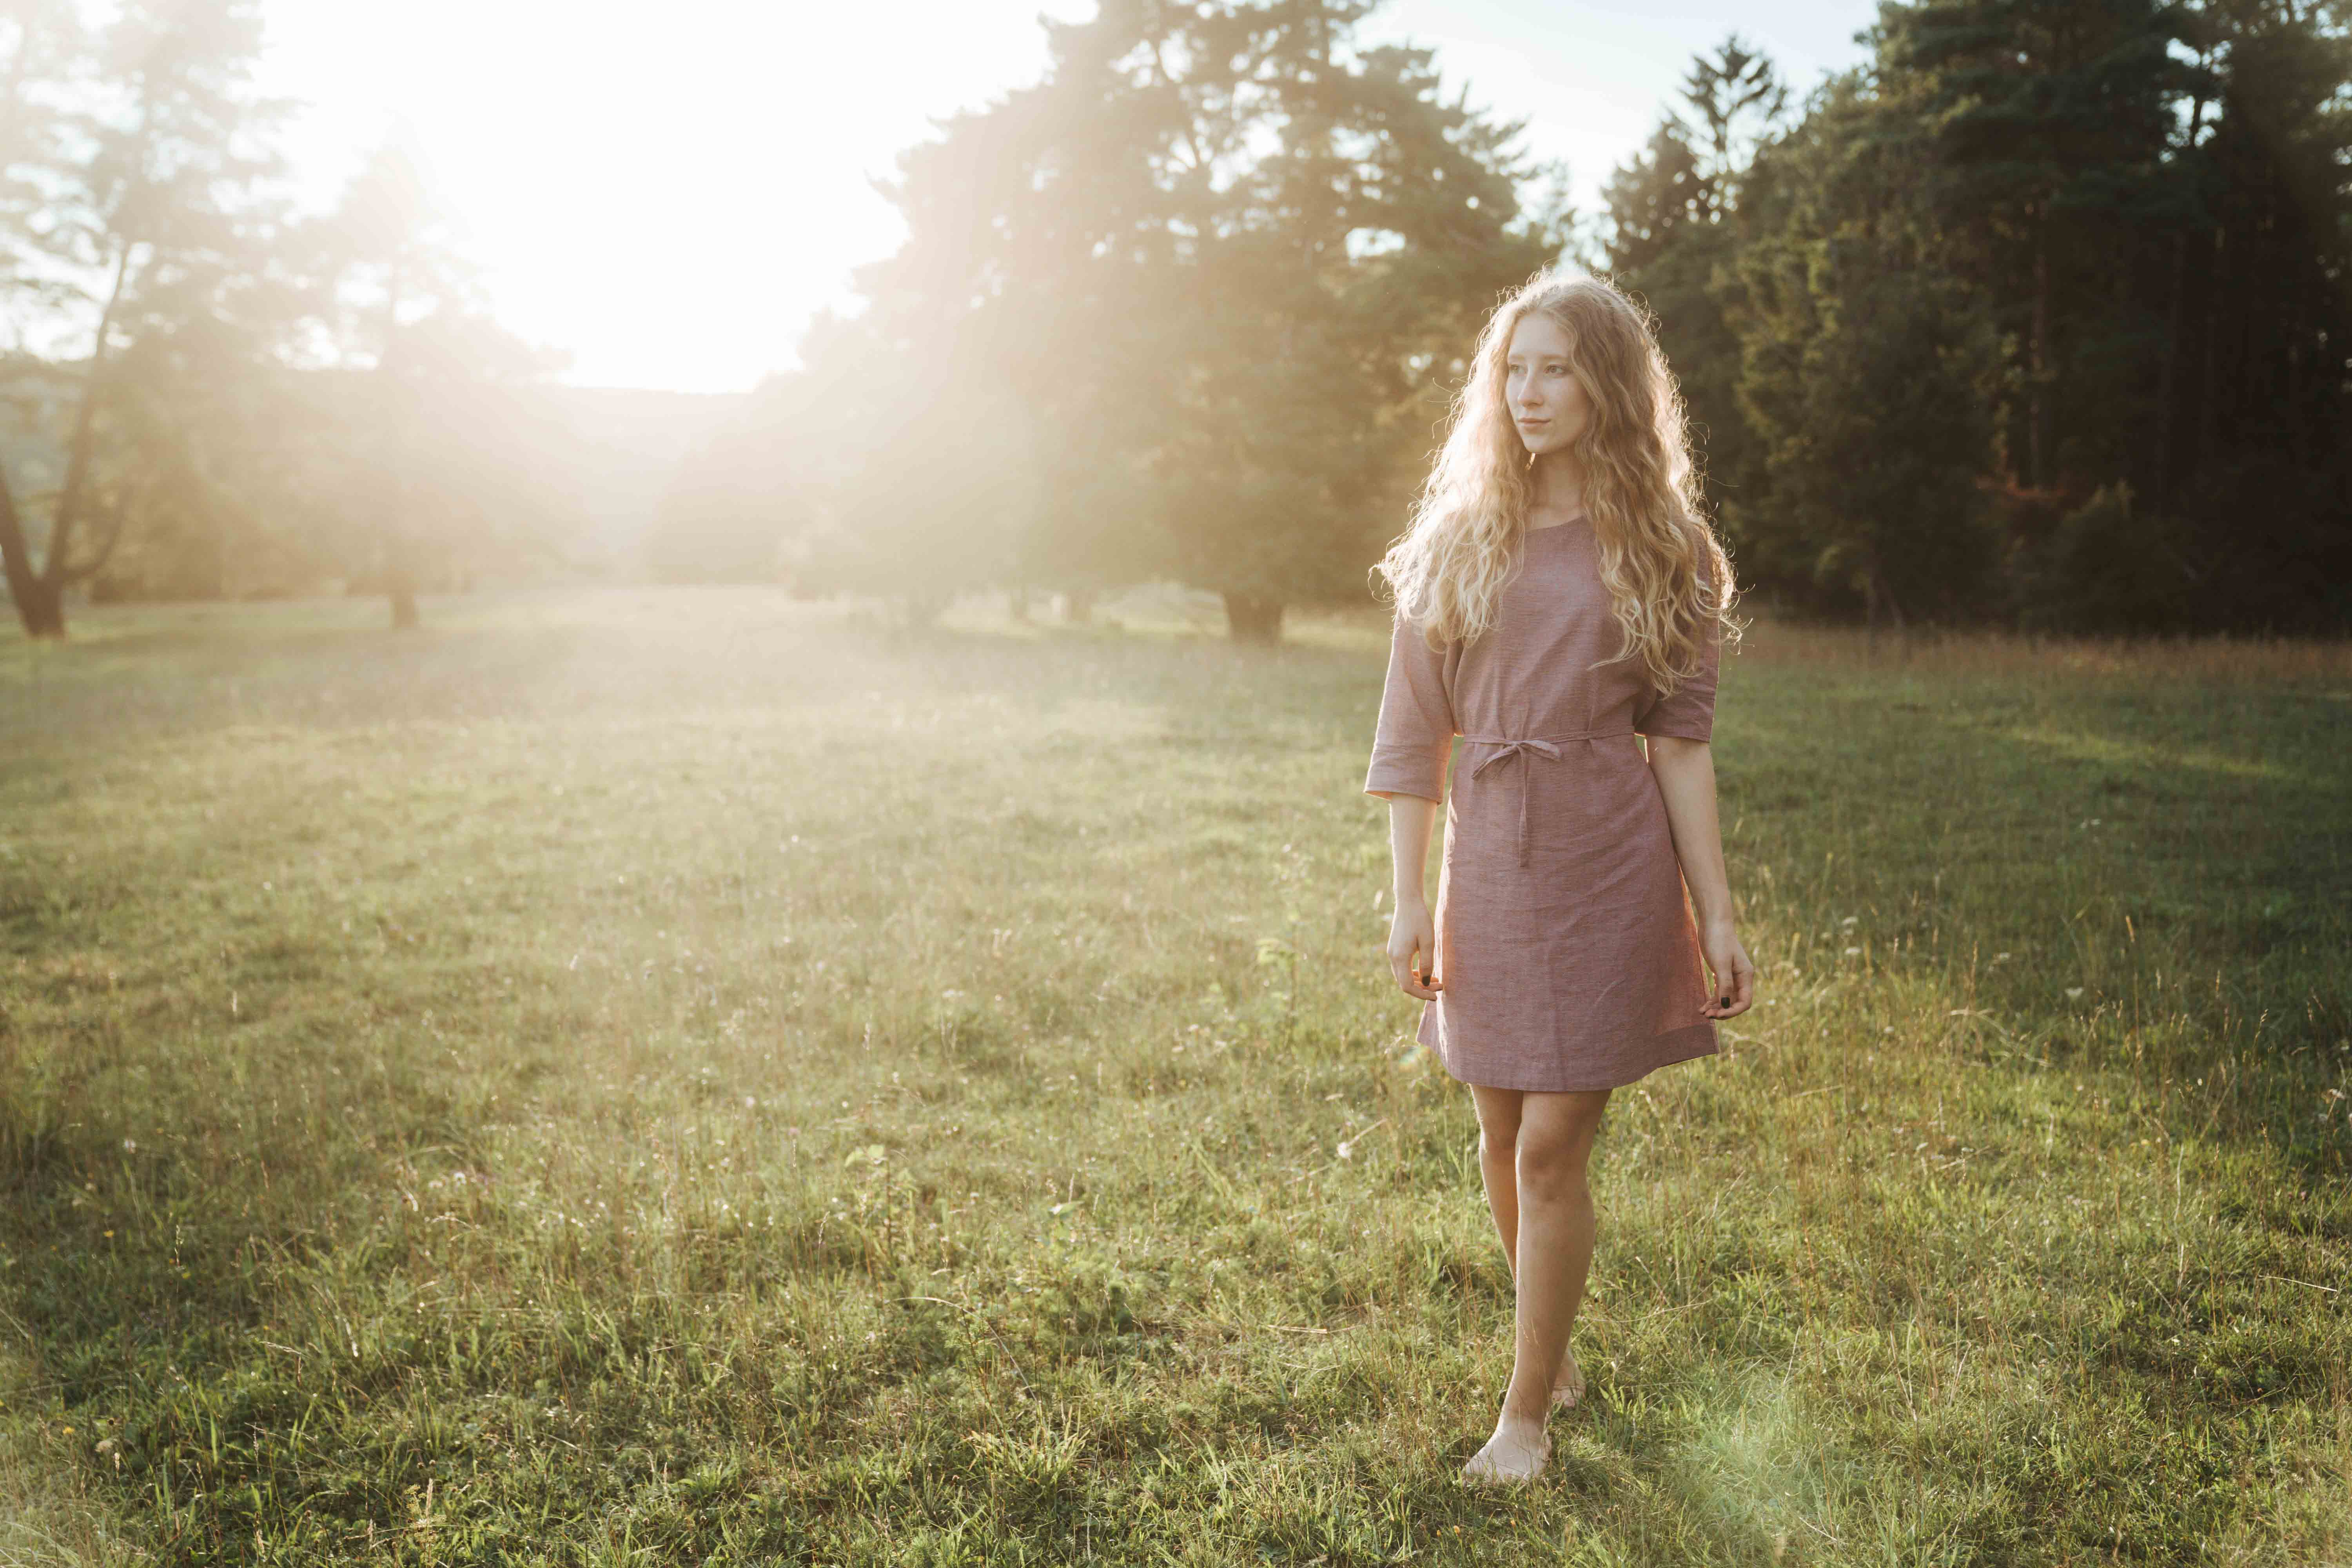 Girl in pink dress by Elkline standing in sunlight surrounded by nature